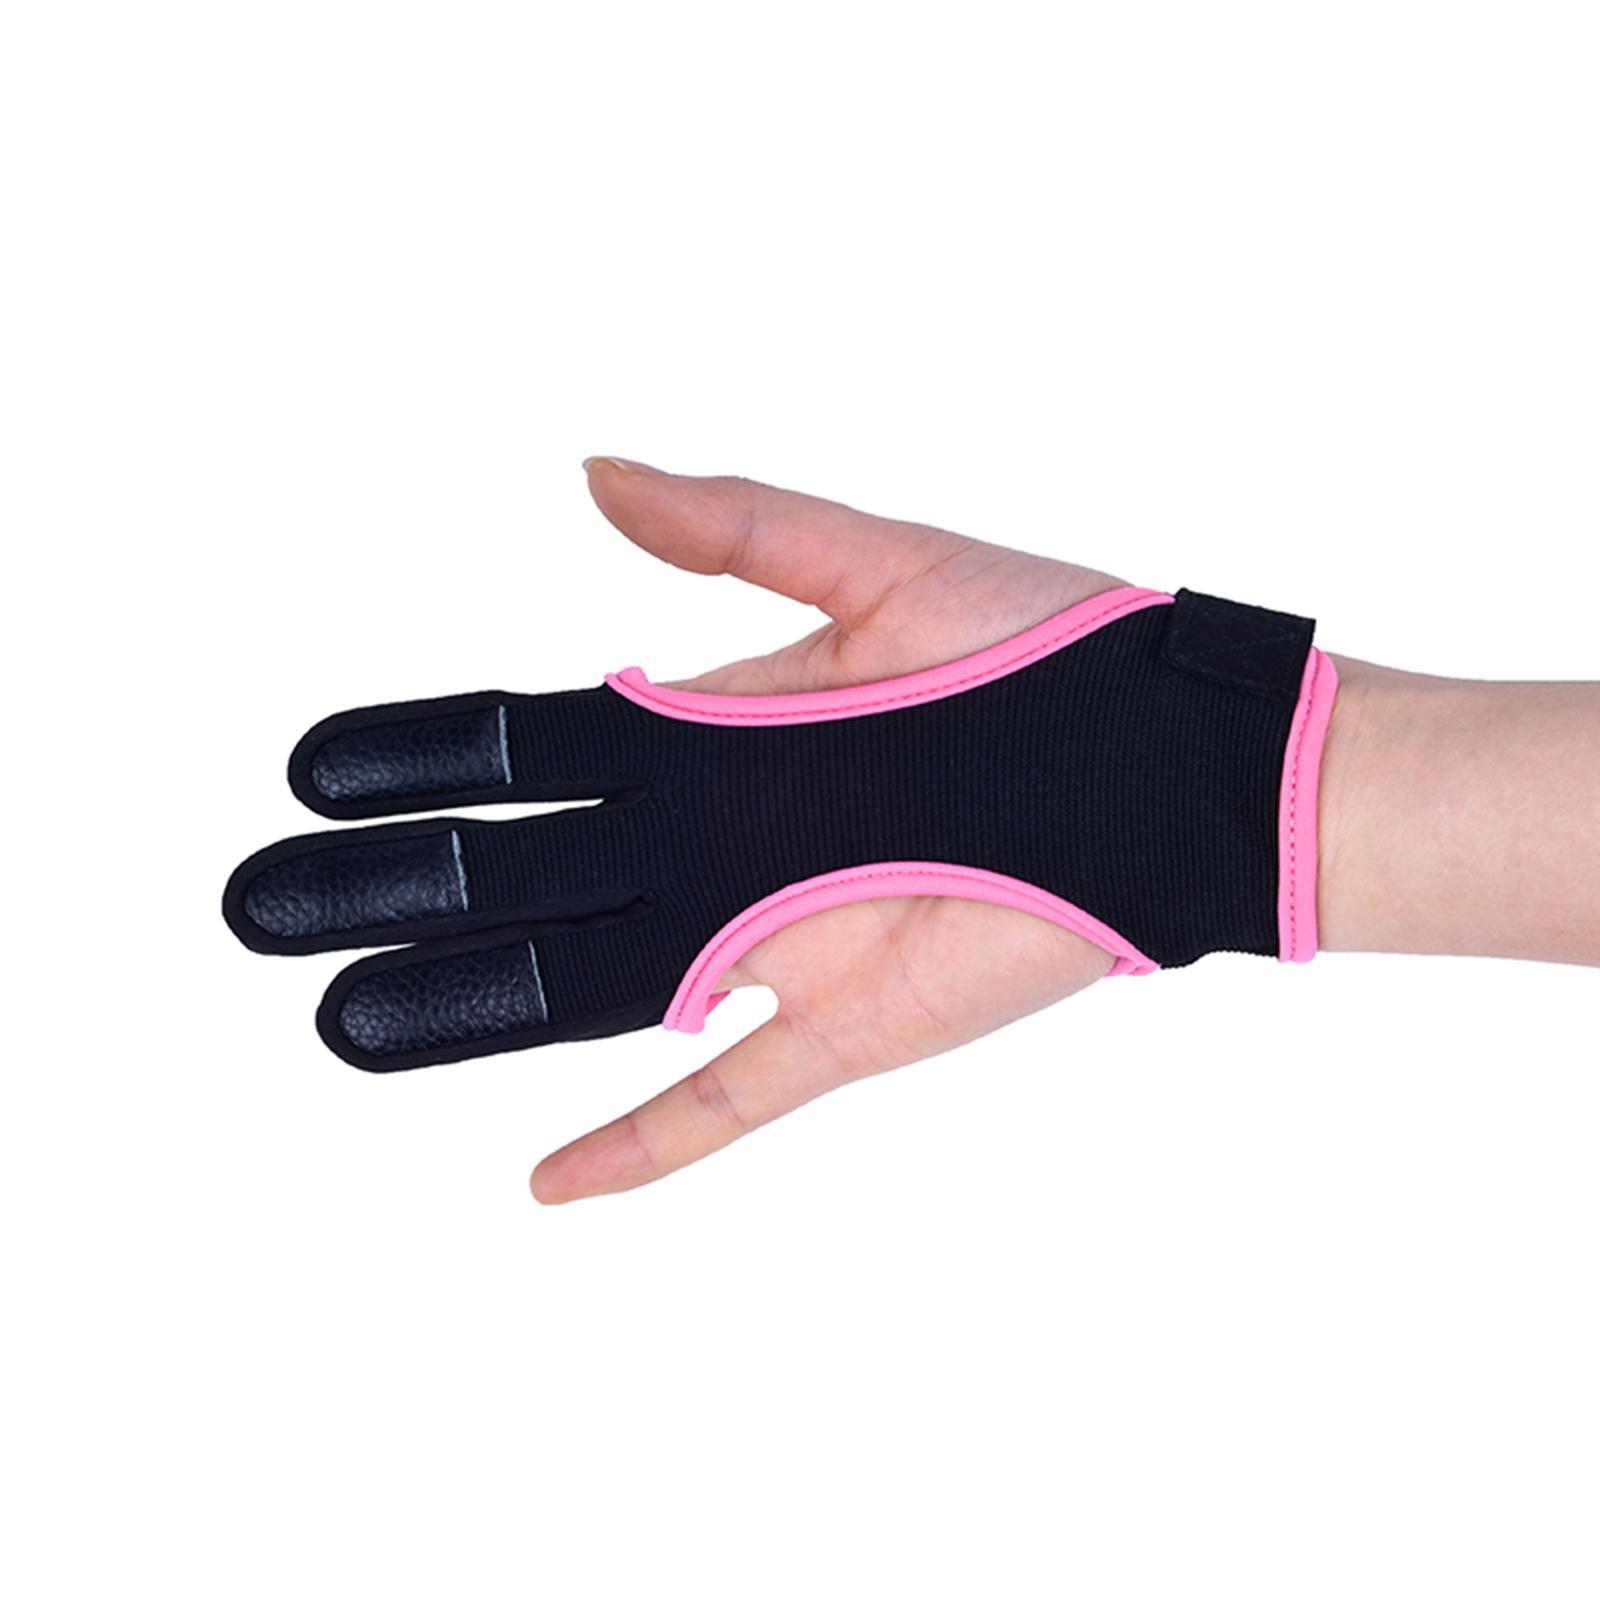 thumbnail 6 - Archery Glove for Recurve & Compound Bow 3 Finger Guard for Women Men Youth